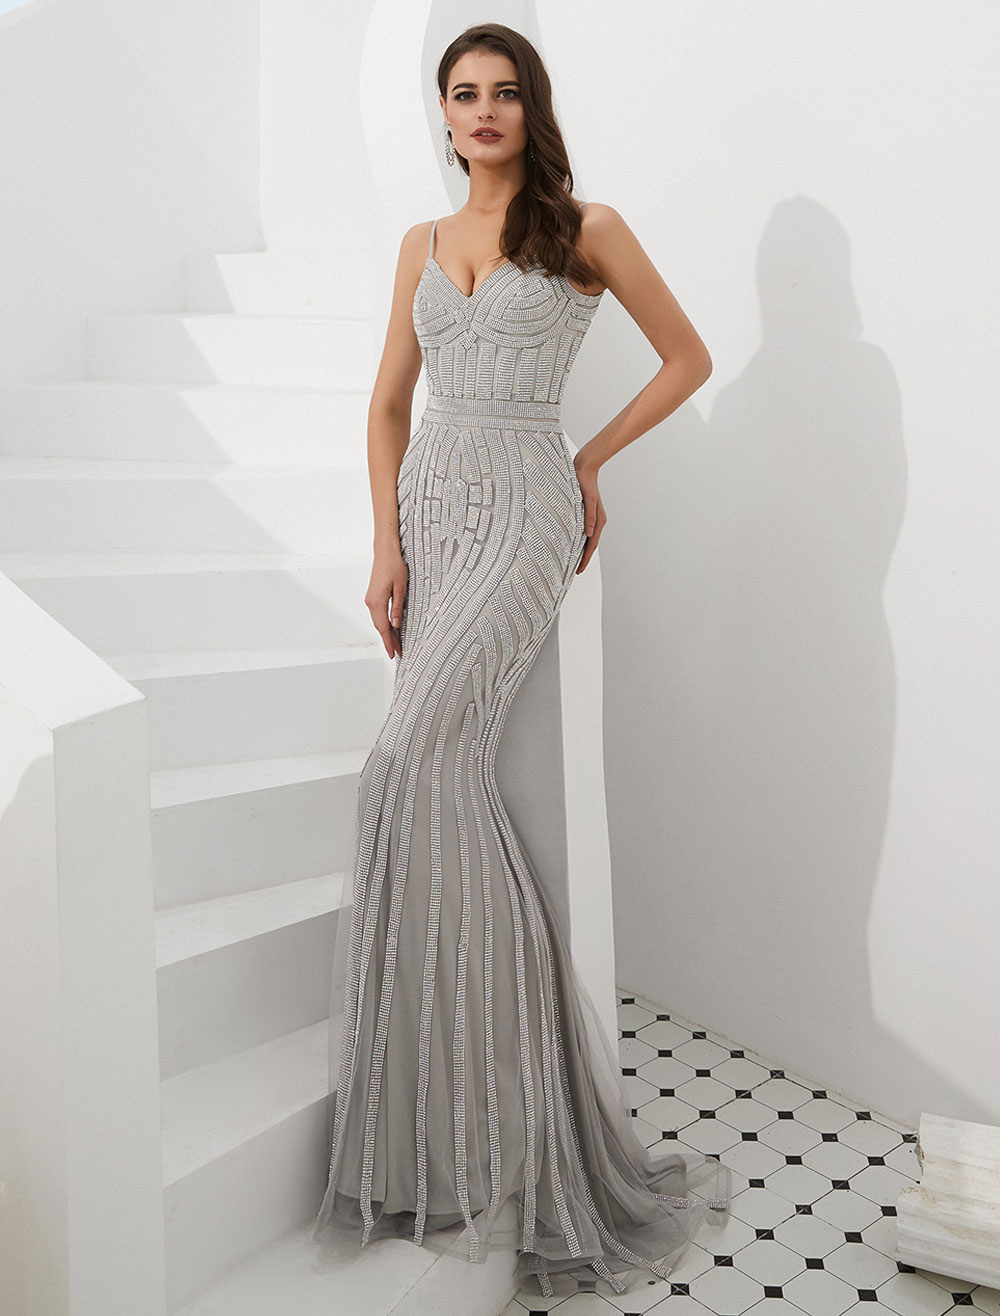 mermaid evening dresses luxury heavy beaded straps formal gowns with train